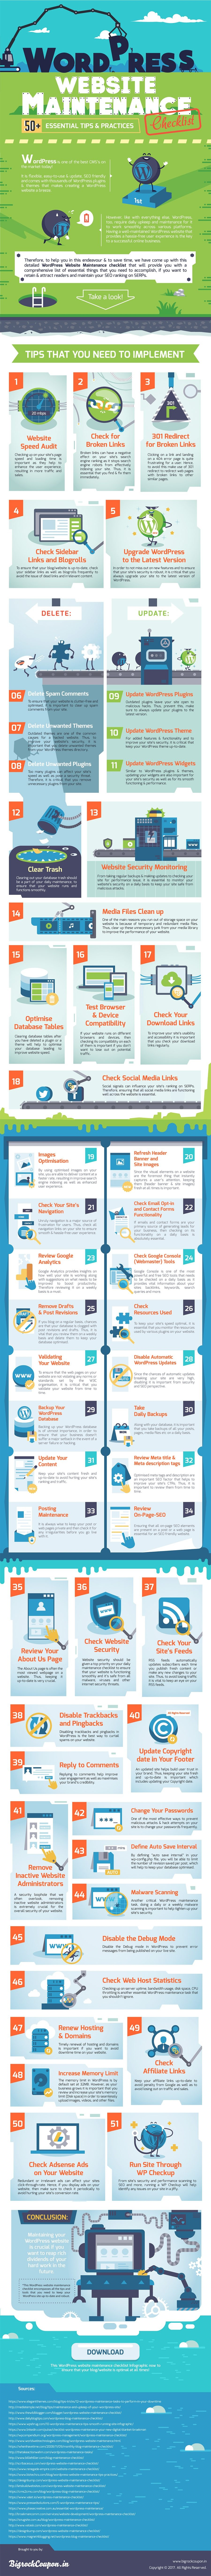 WordPress Website Maintenance Checklist 50+ Essential Tips & Practices - #Infographic